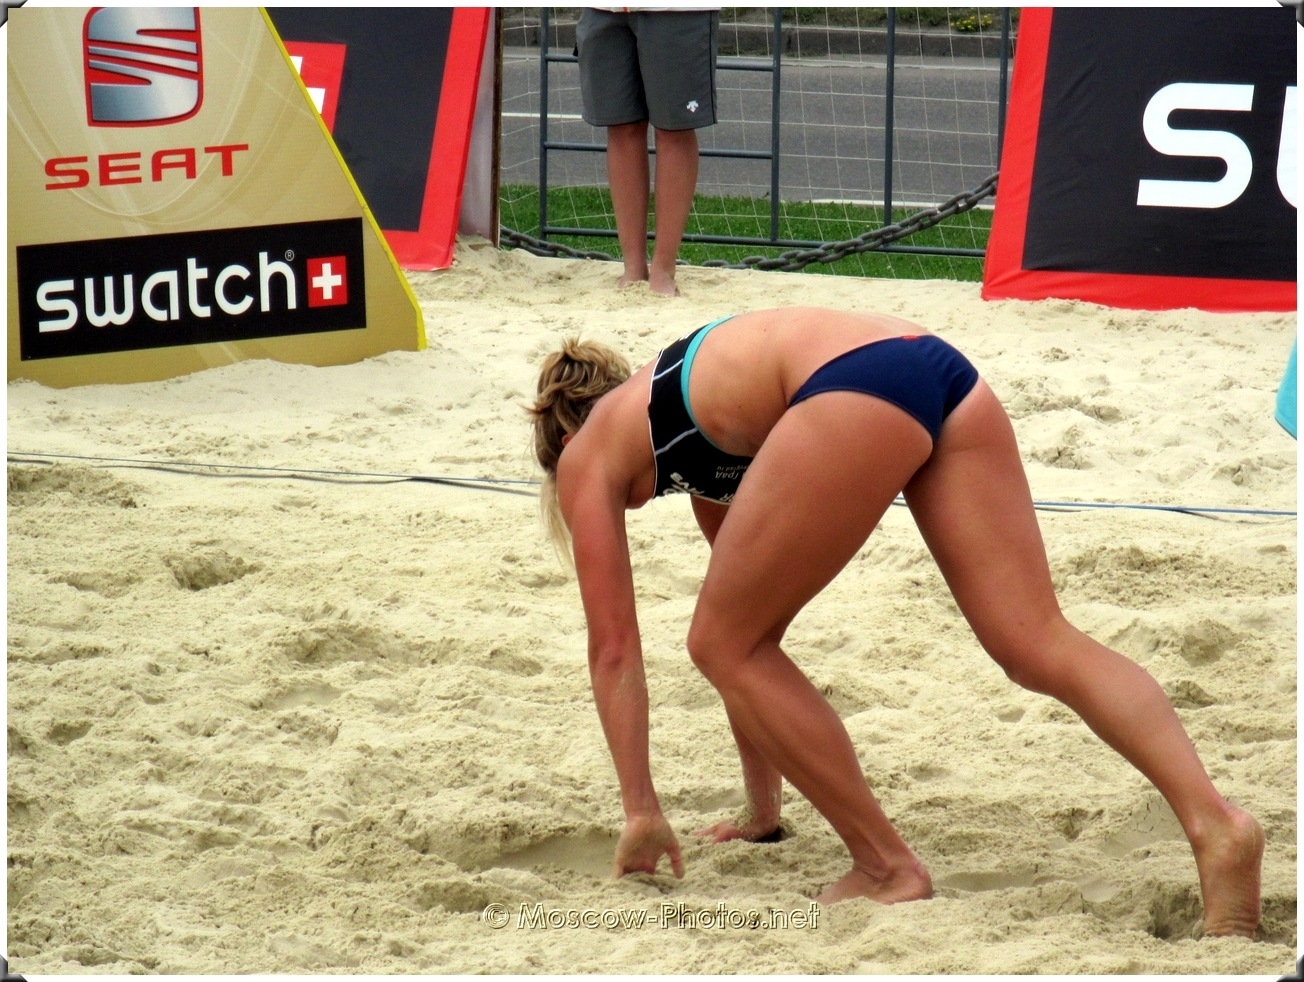 After a difficult beach volleyball combination